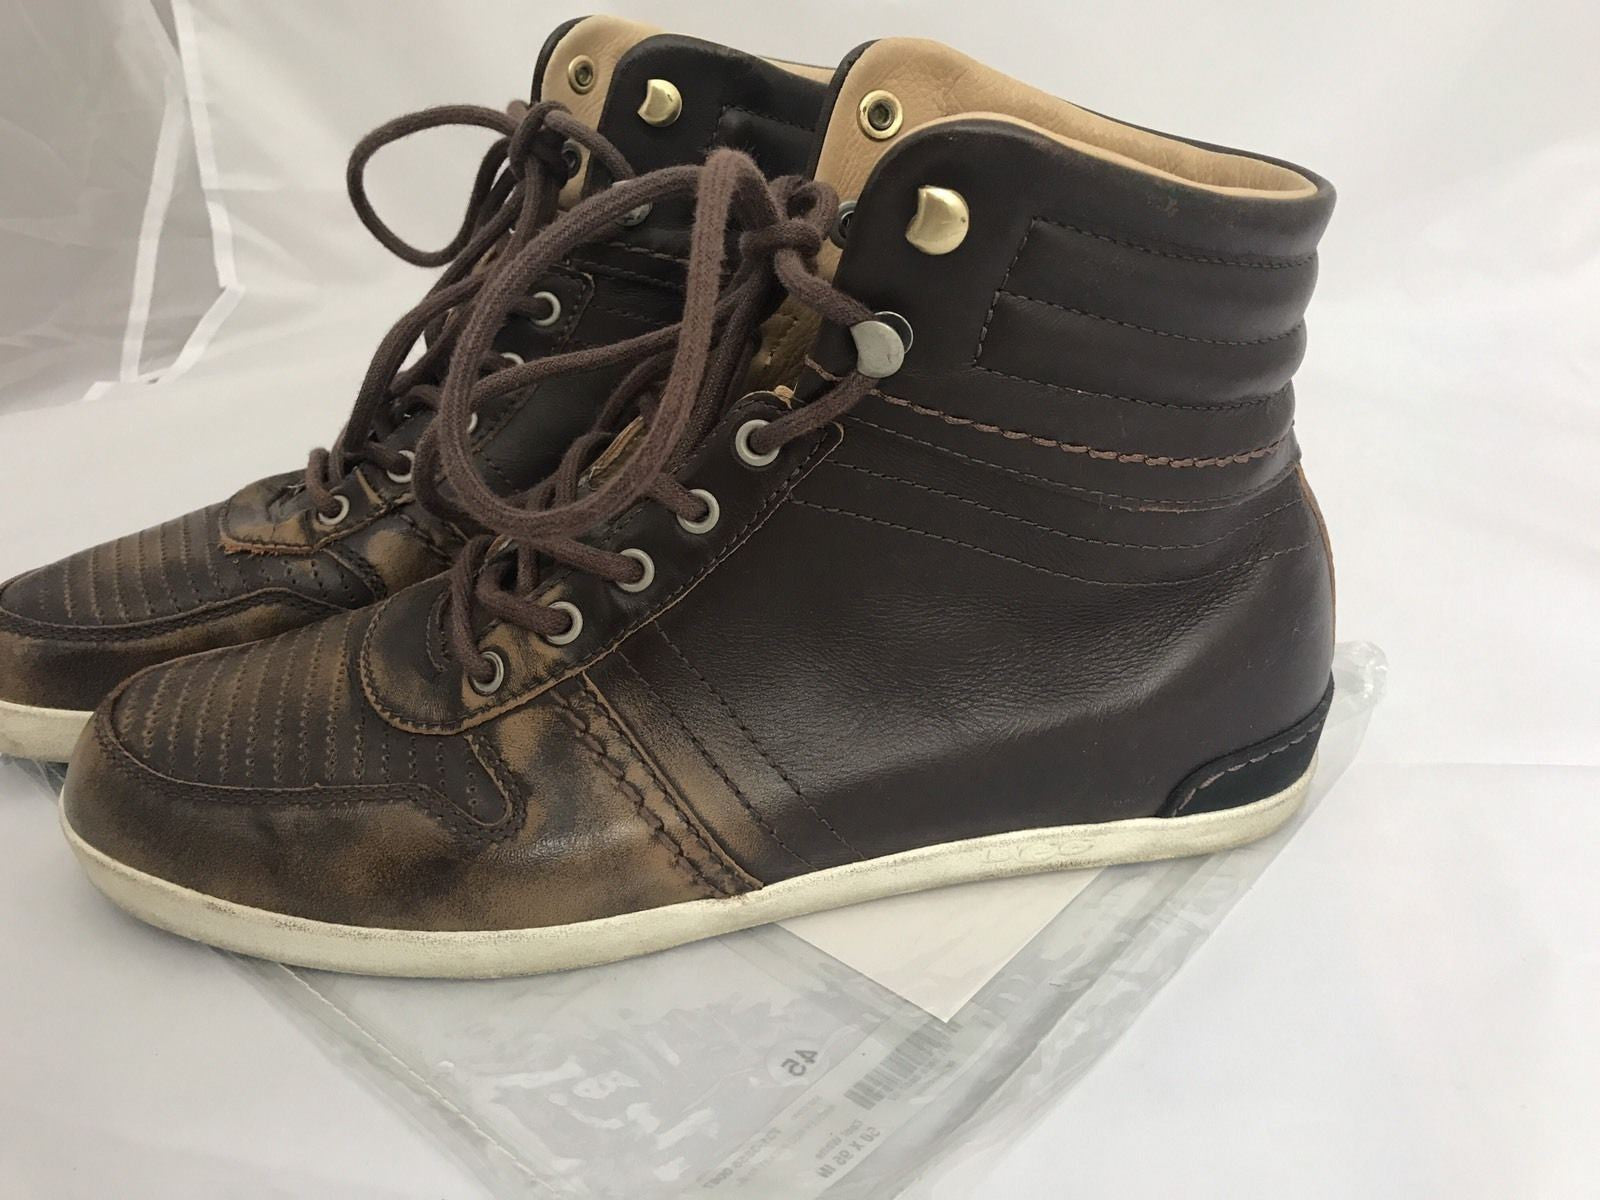 UGG Australia Men's Stylish Leather Boots Brown 9.5 US (42.5 Euro) - BAYSUPERSTORE